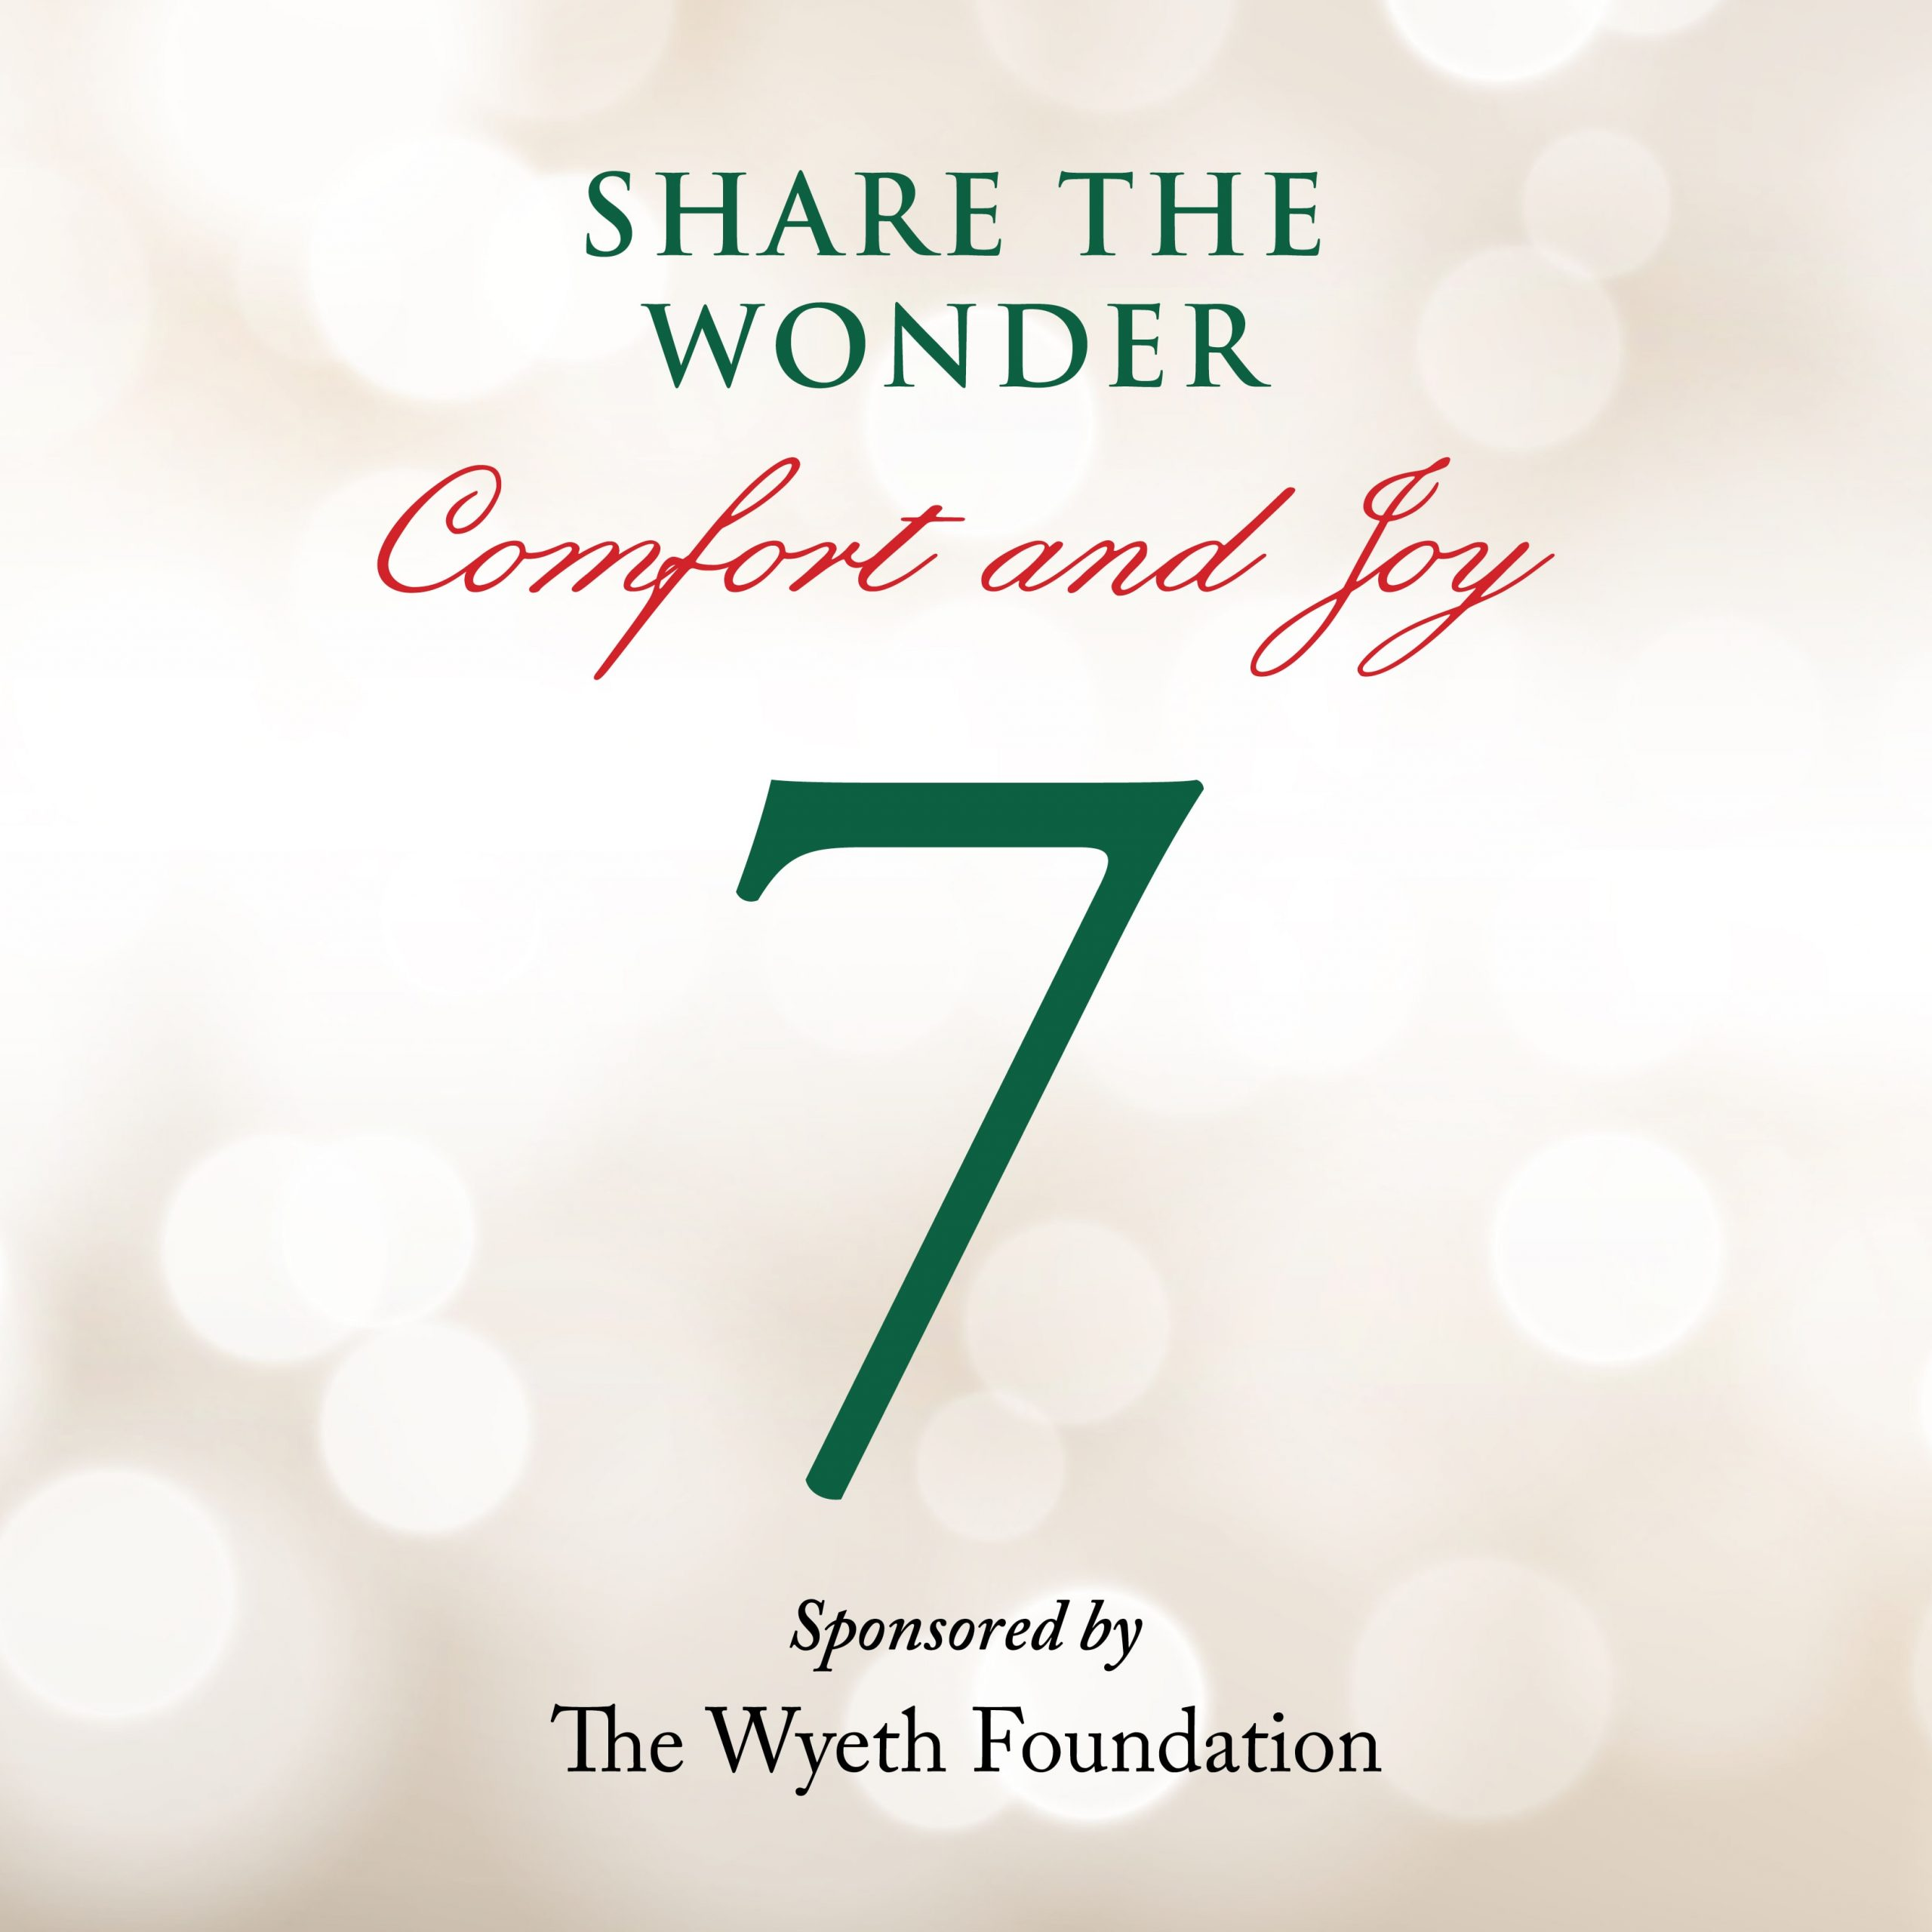 Day 7 of Share the Wonder: December 4